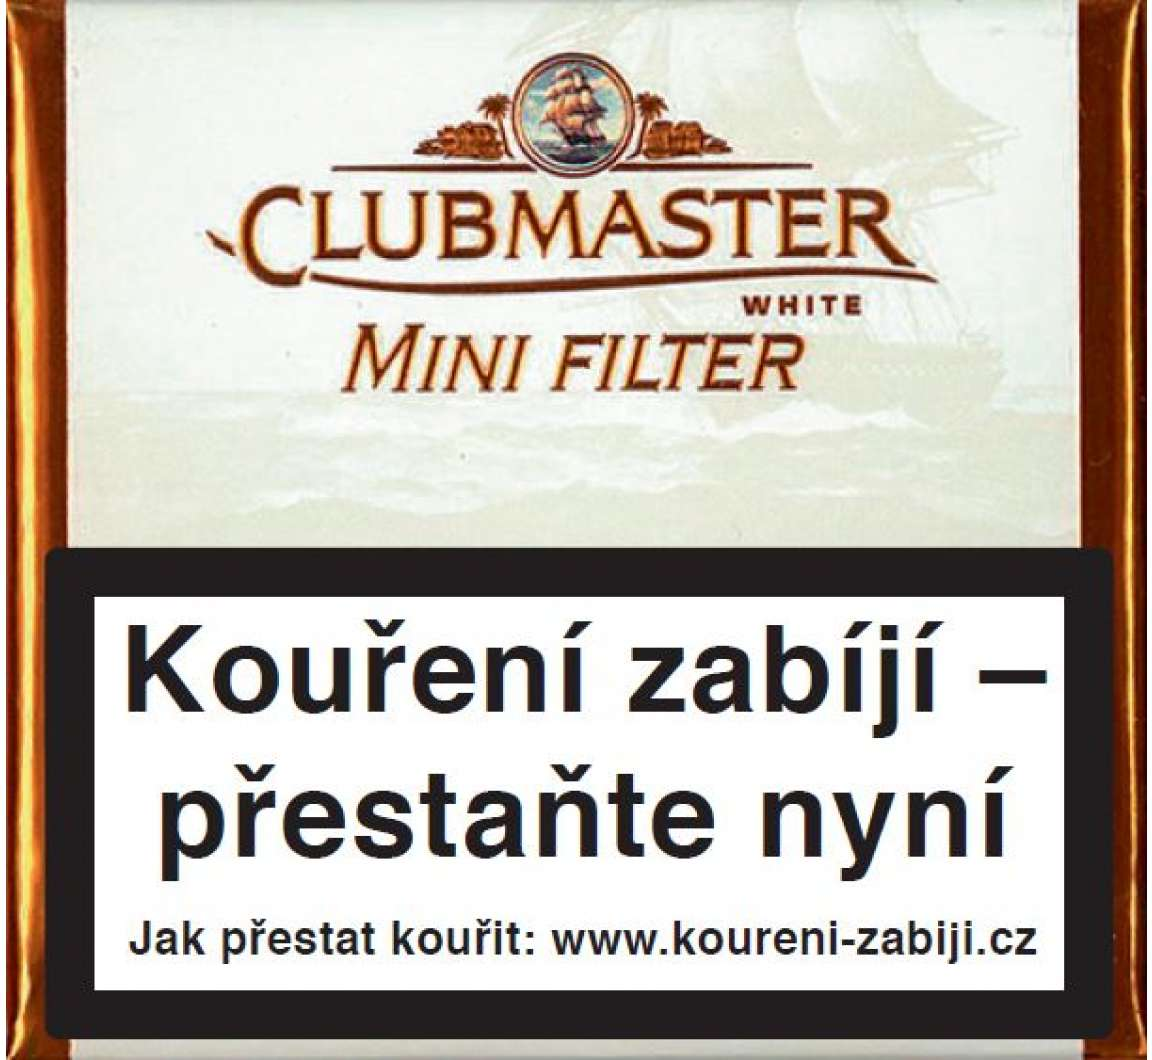 Clubmaster Mini White Filter 20ks